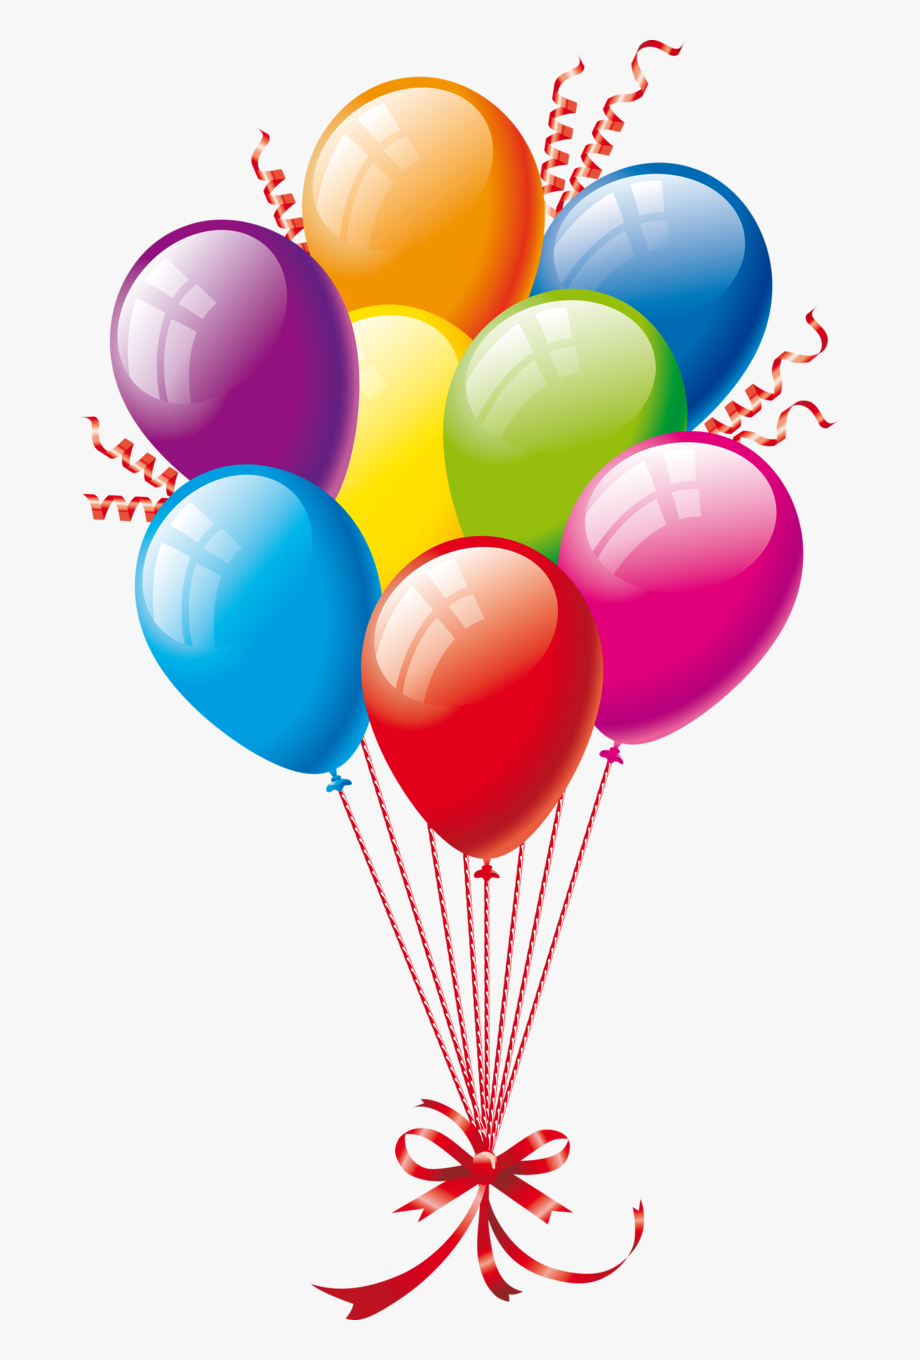 Clipart Of Birthday Balloons.